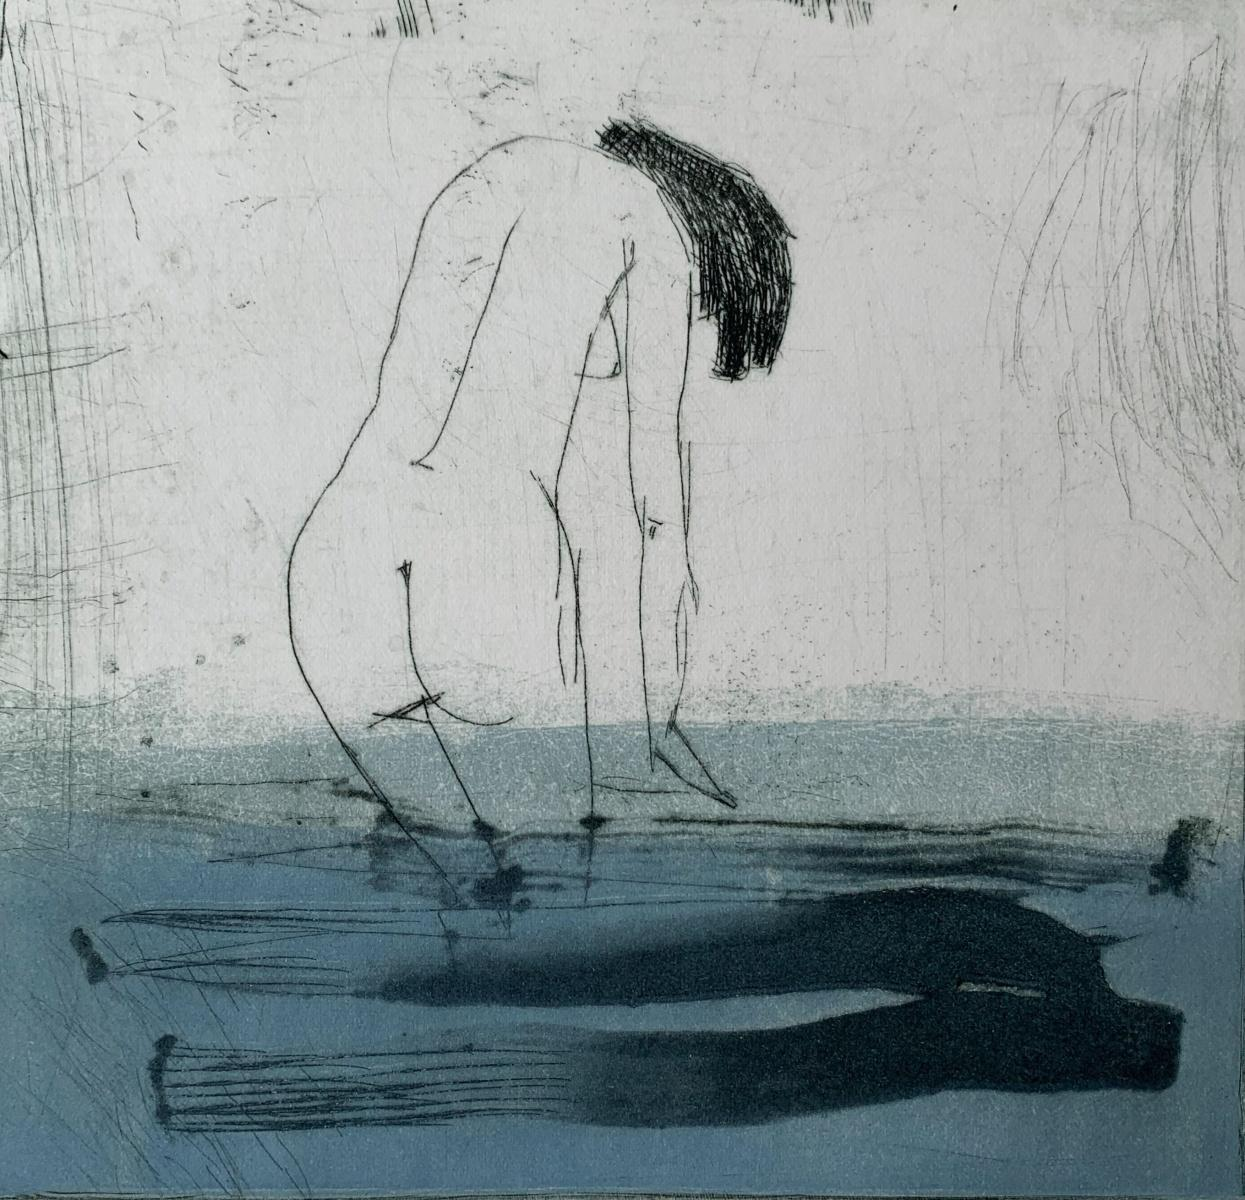 In water 1 - Contemporary Figurative Drypoint Etching Print, Female nude